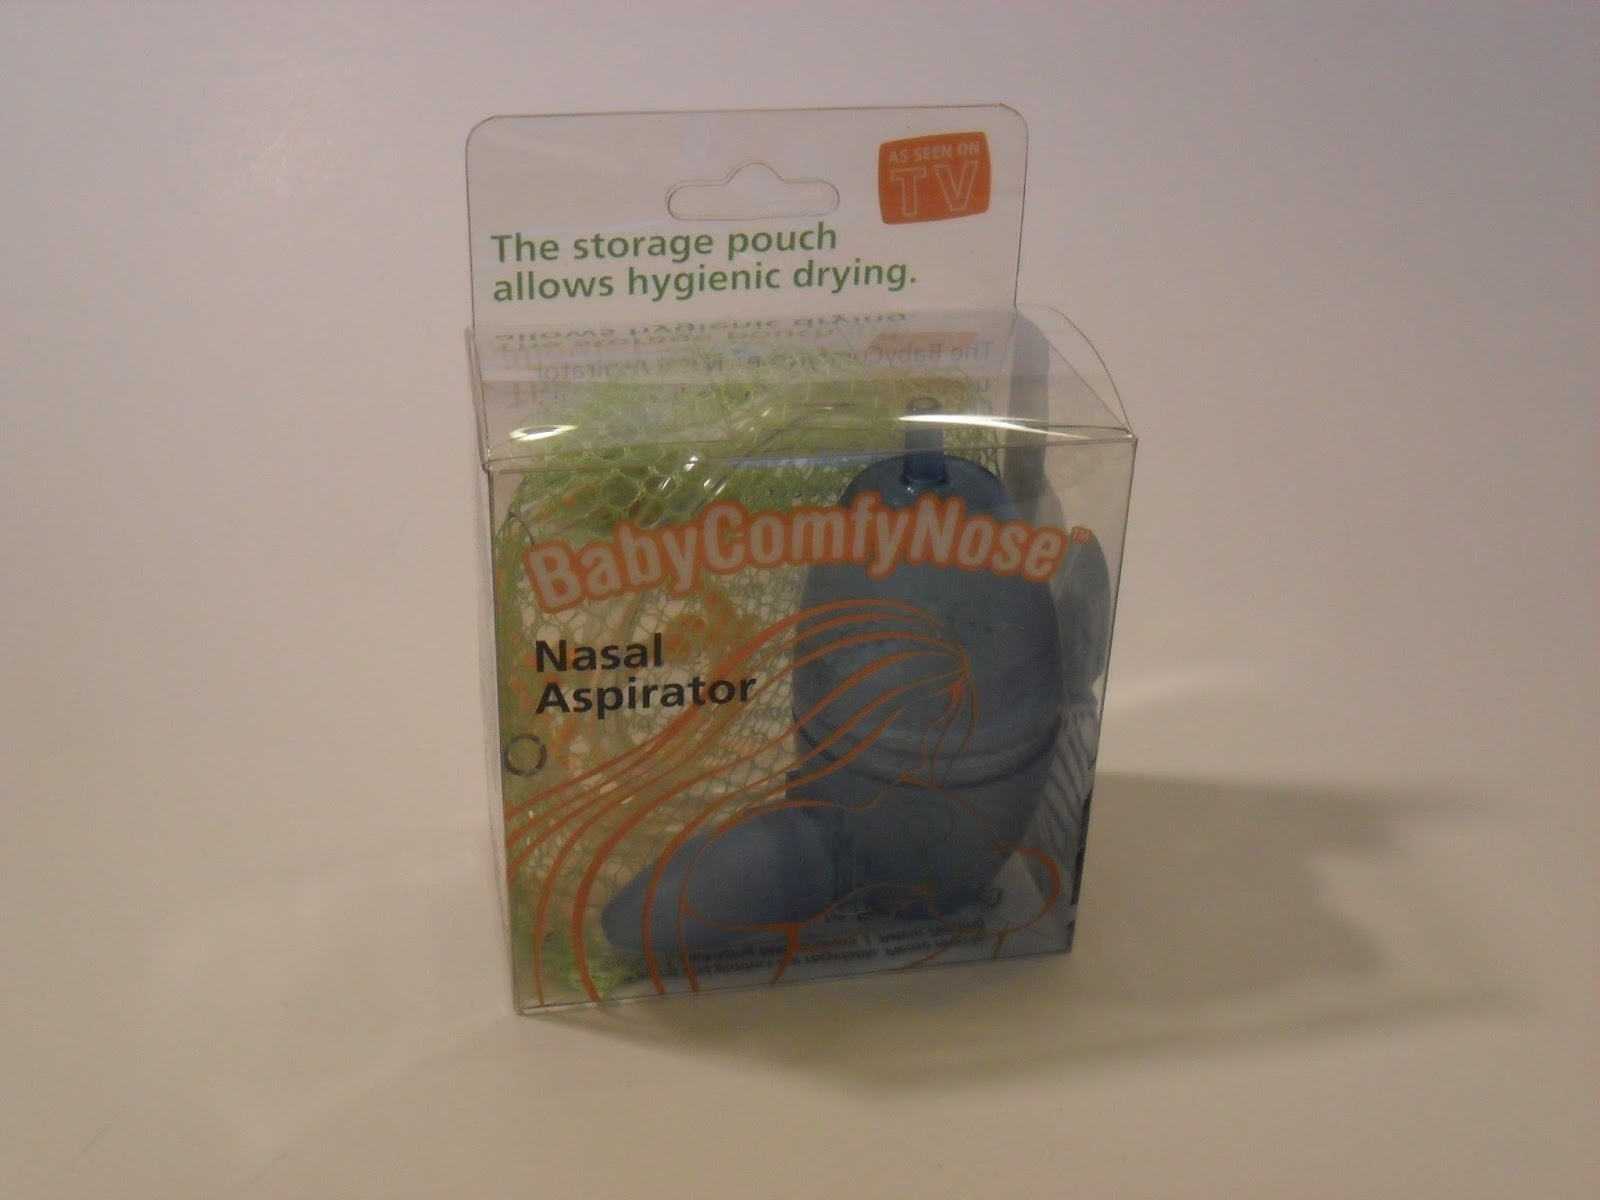 Keep stuffy away with BabyComfyNose Review